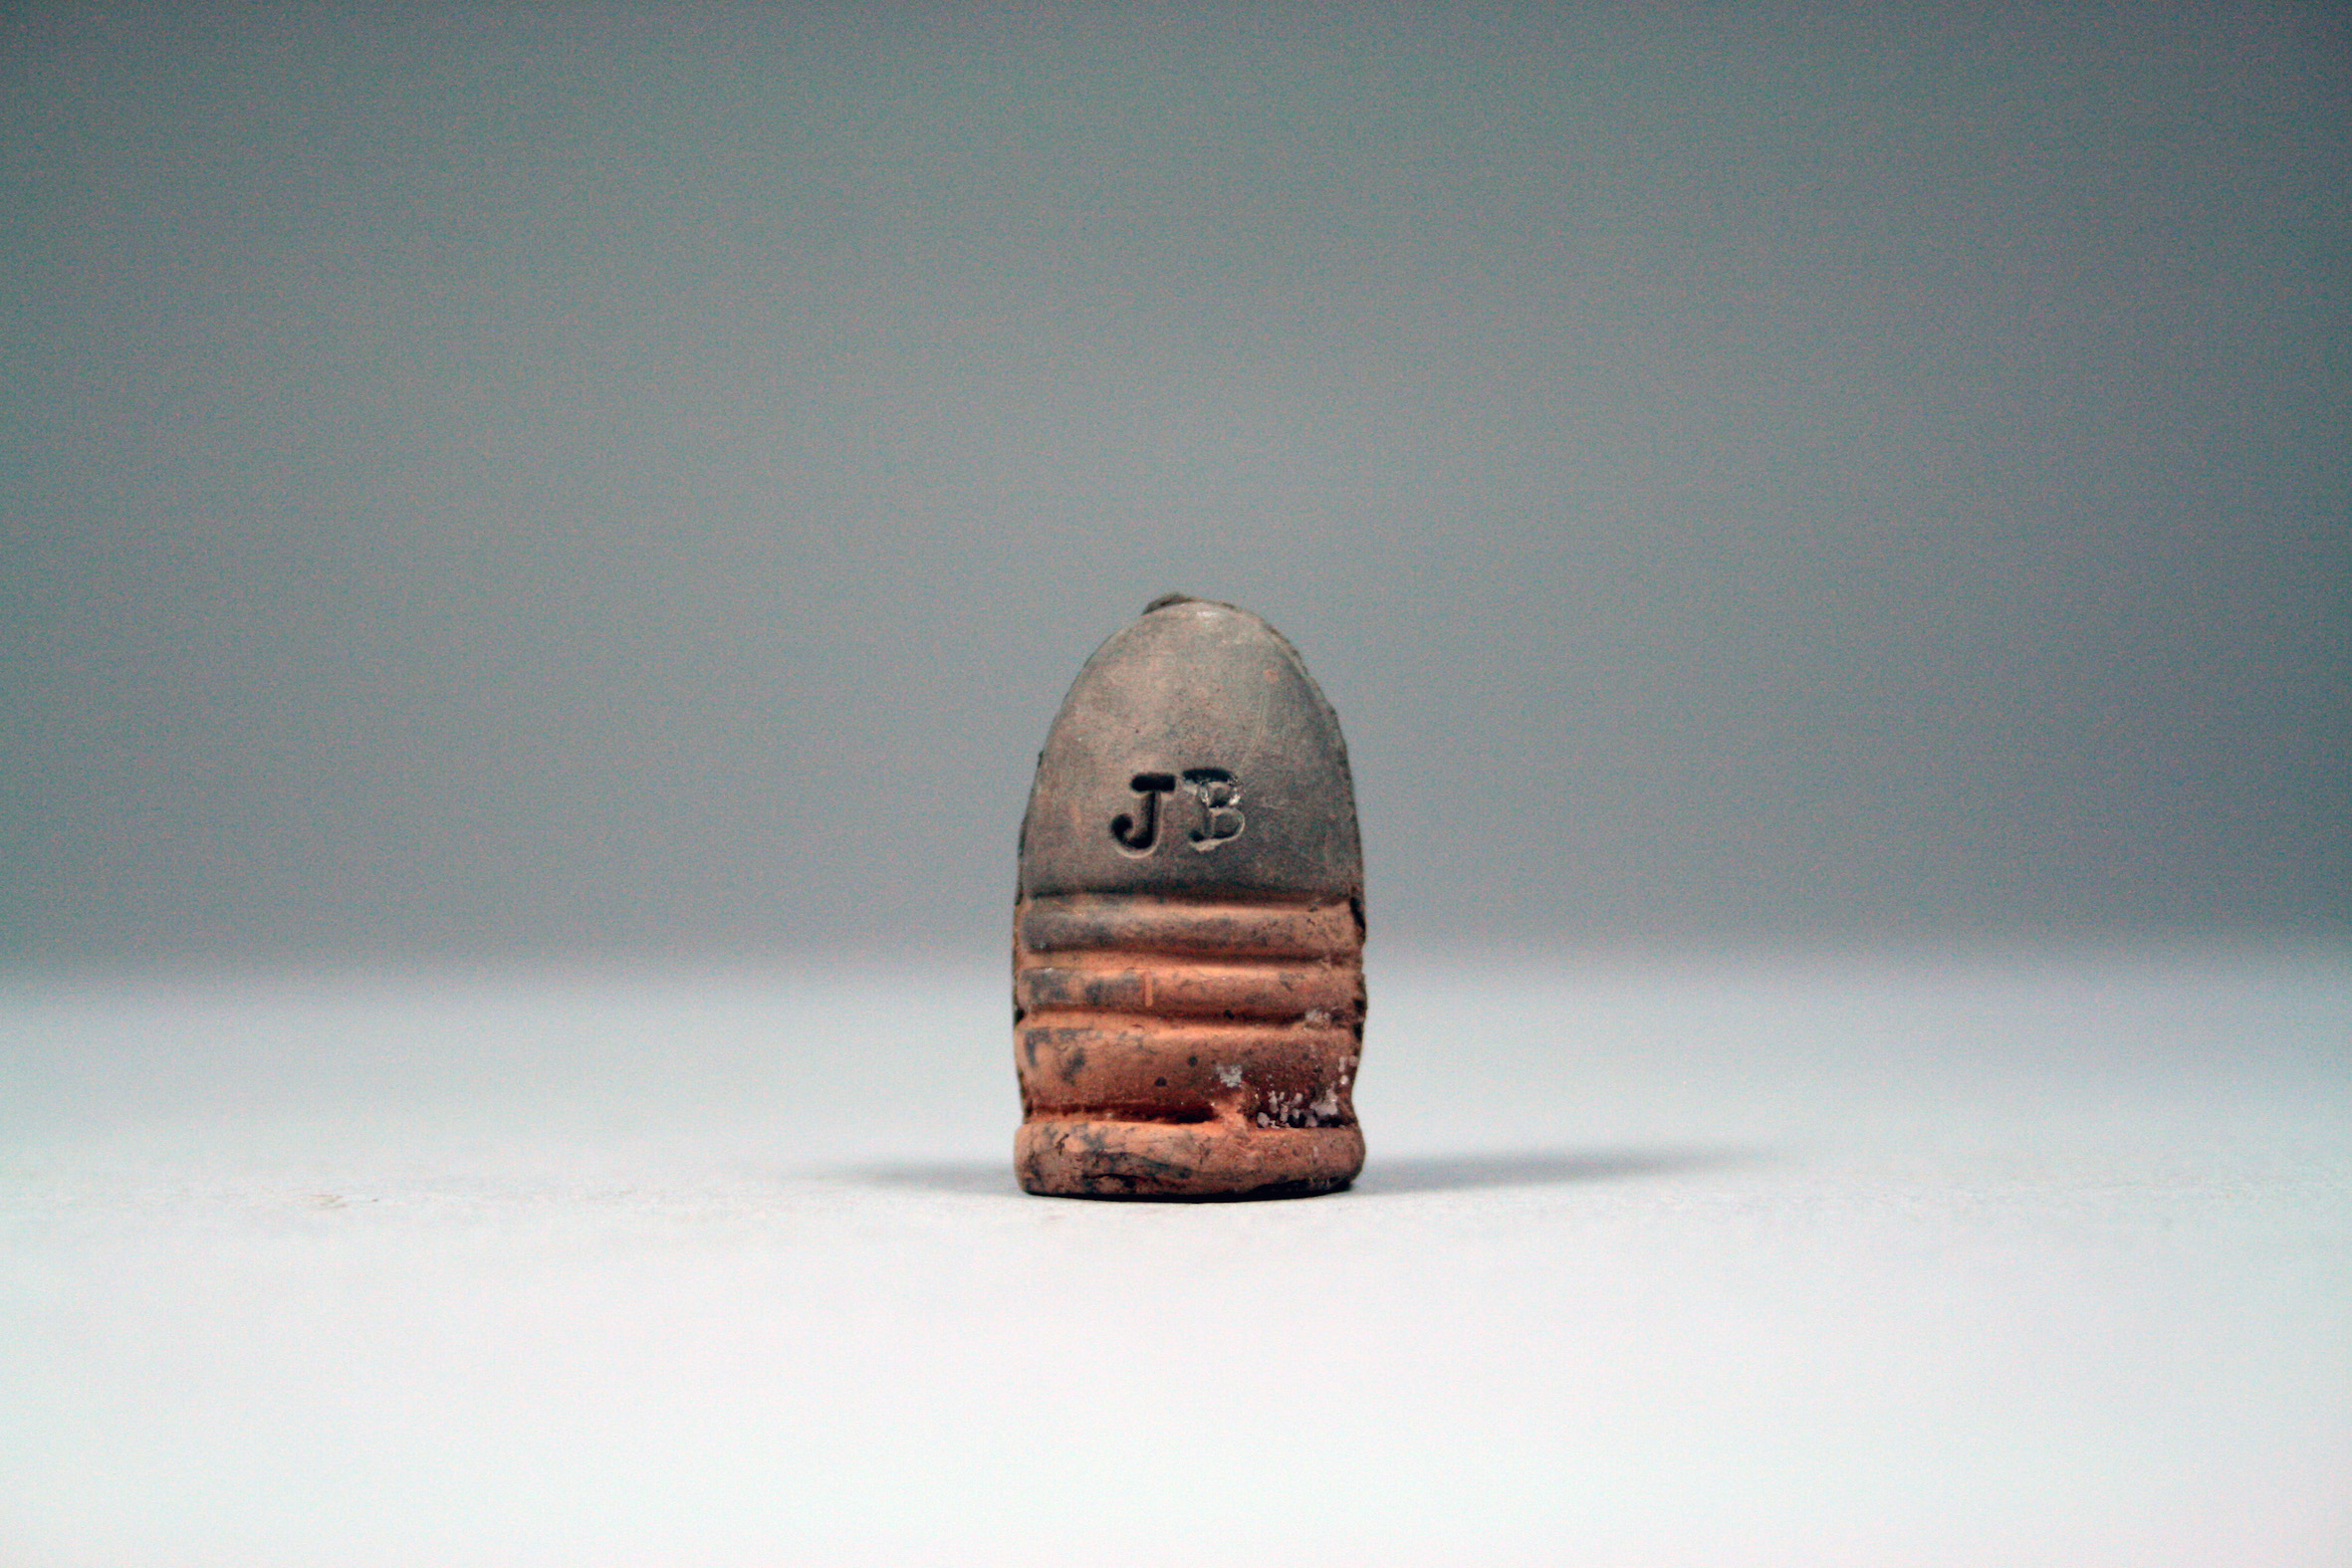 Bury My Heart | James Bloomfield, 2015 | pitfired slip cast ceramic Civil War era bullets | image: courtesy of the artist